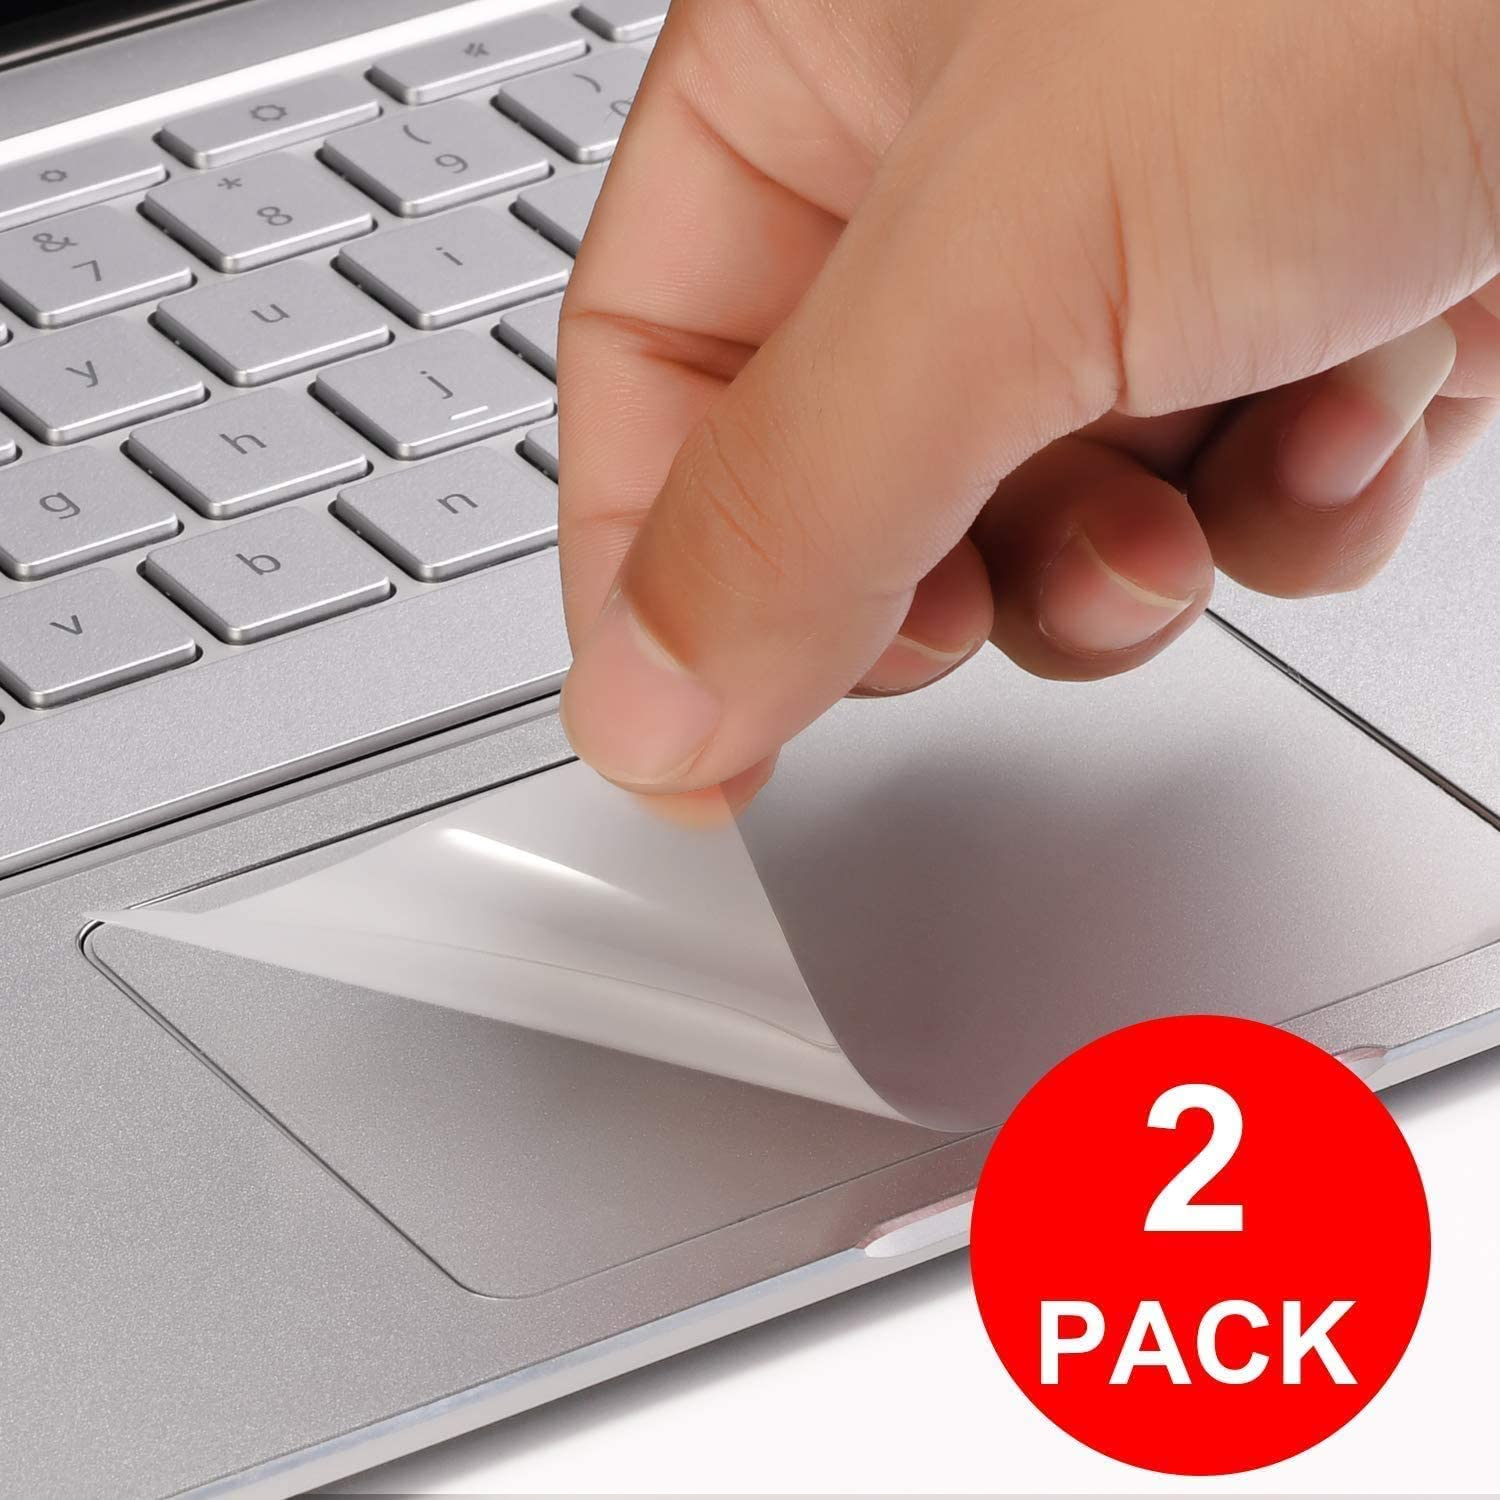 [2Pack] Lapogy Trackpad Protector Cover Skin,Compatible for hp chromebook x2,Lenovo chromebook s330,Lenovo N21,Anti-Scratch Trackpad Protector hp chromebook x2 Accessories